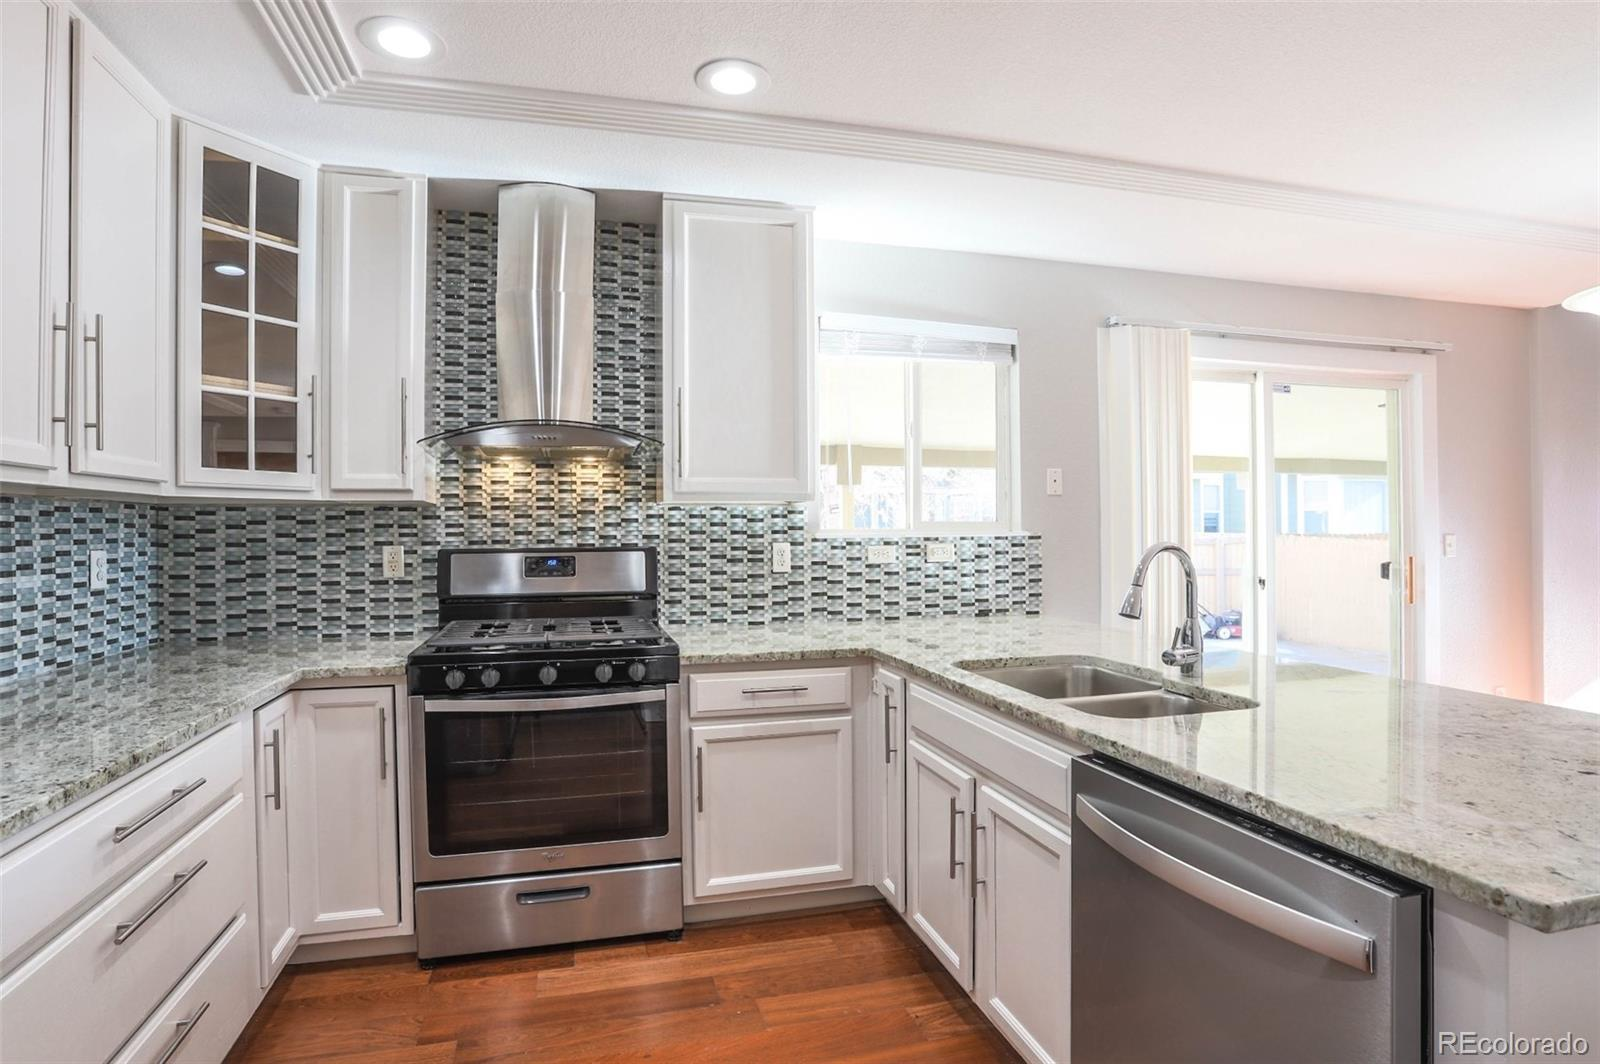 Stunning Kitchen with Granite Counters, Tons of Cabinets and Custom Stainless Range Hood Over a 5-Burner Gas Range